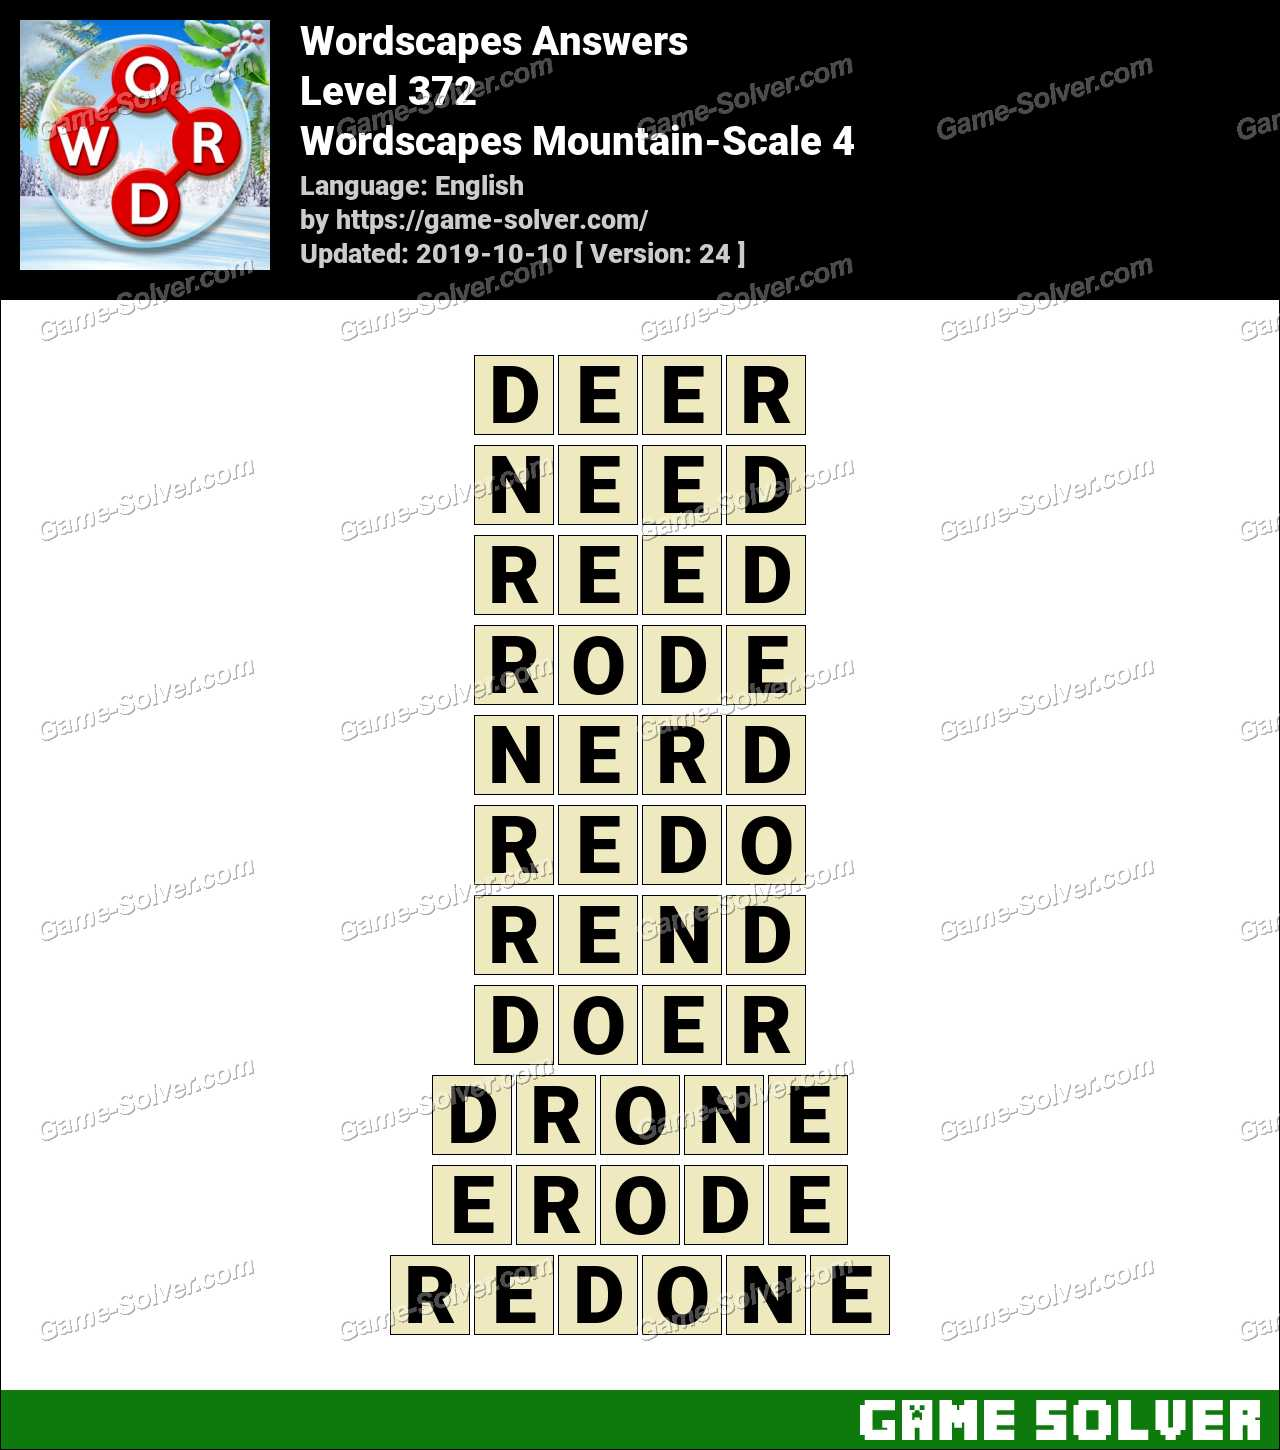 Wordscapes Mountain-Scale 4 Answers